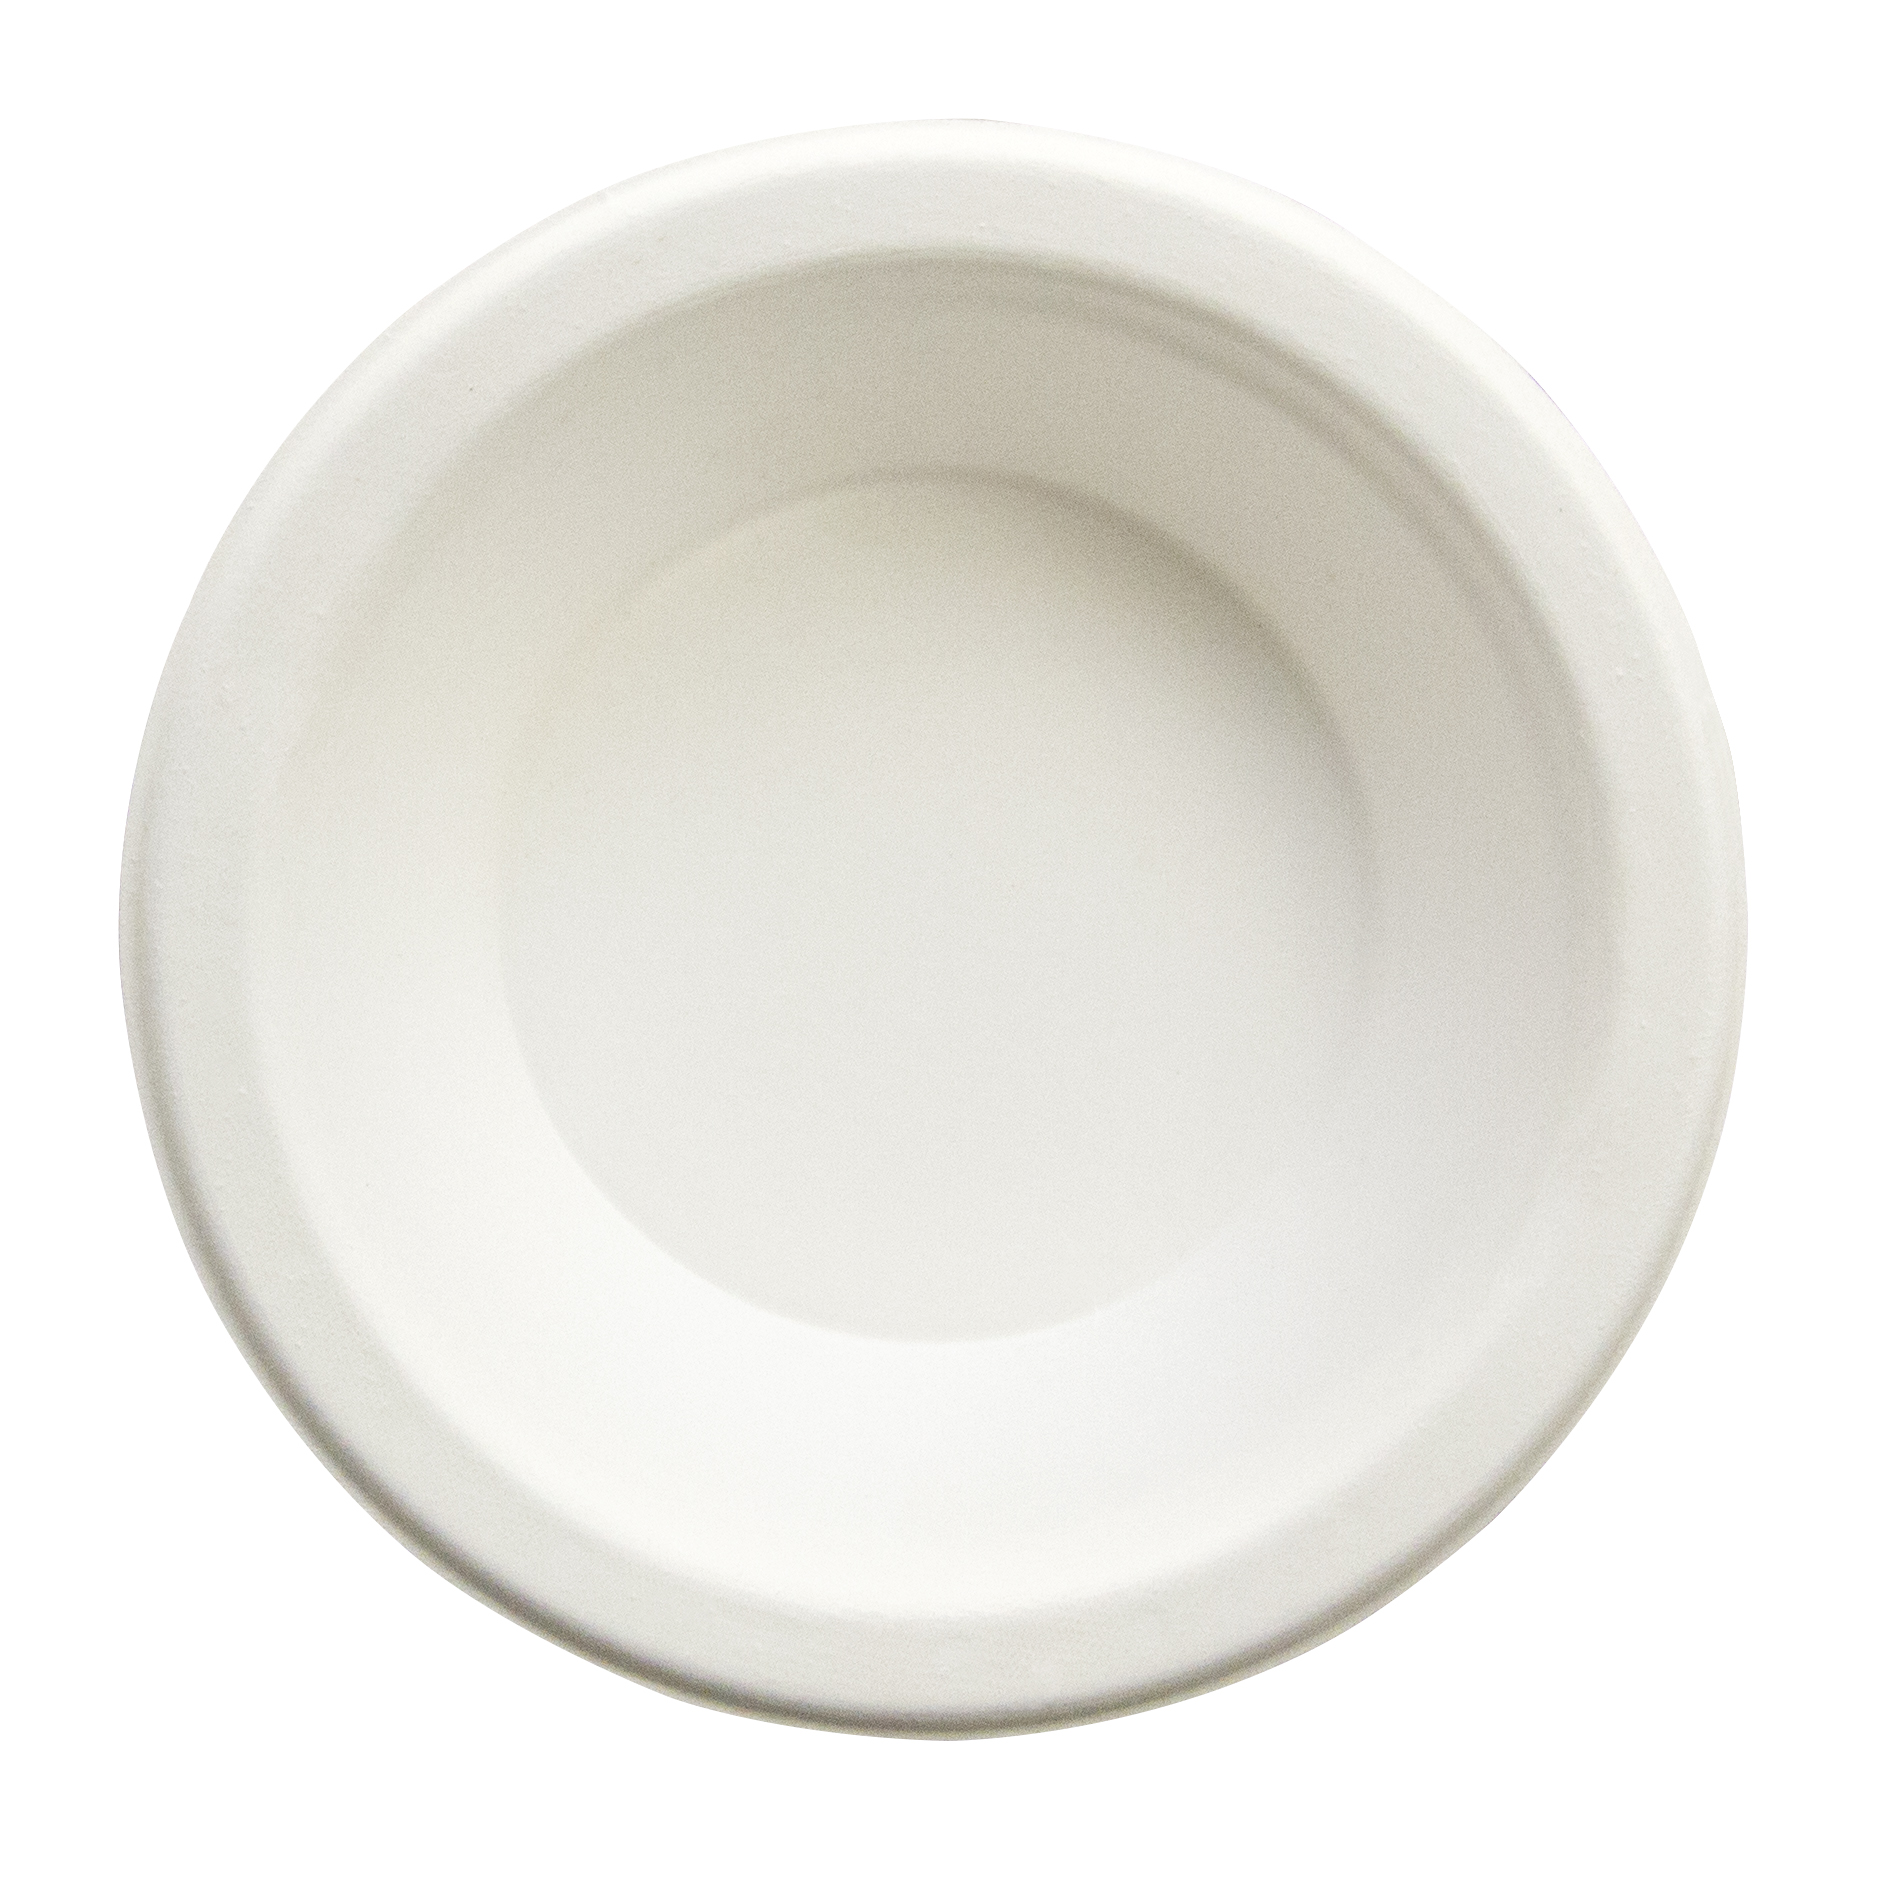 Eco-Friendly 100% Compostable Sugarcane fiber, Heavy Weight Bowl, Size: 12 oz , Color: Natural, 1,000/cs